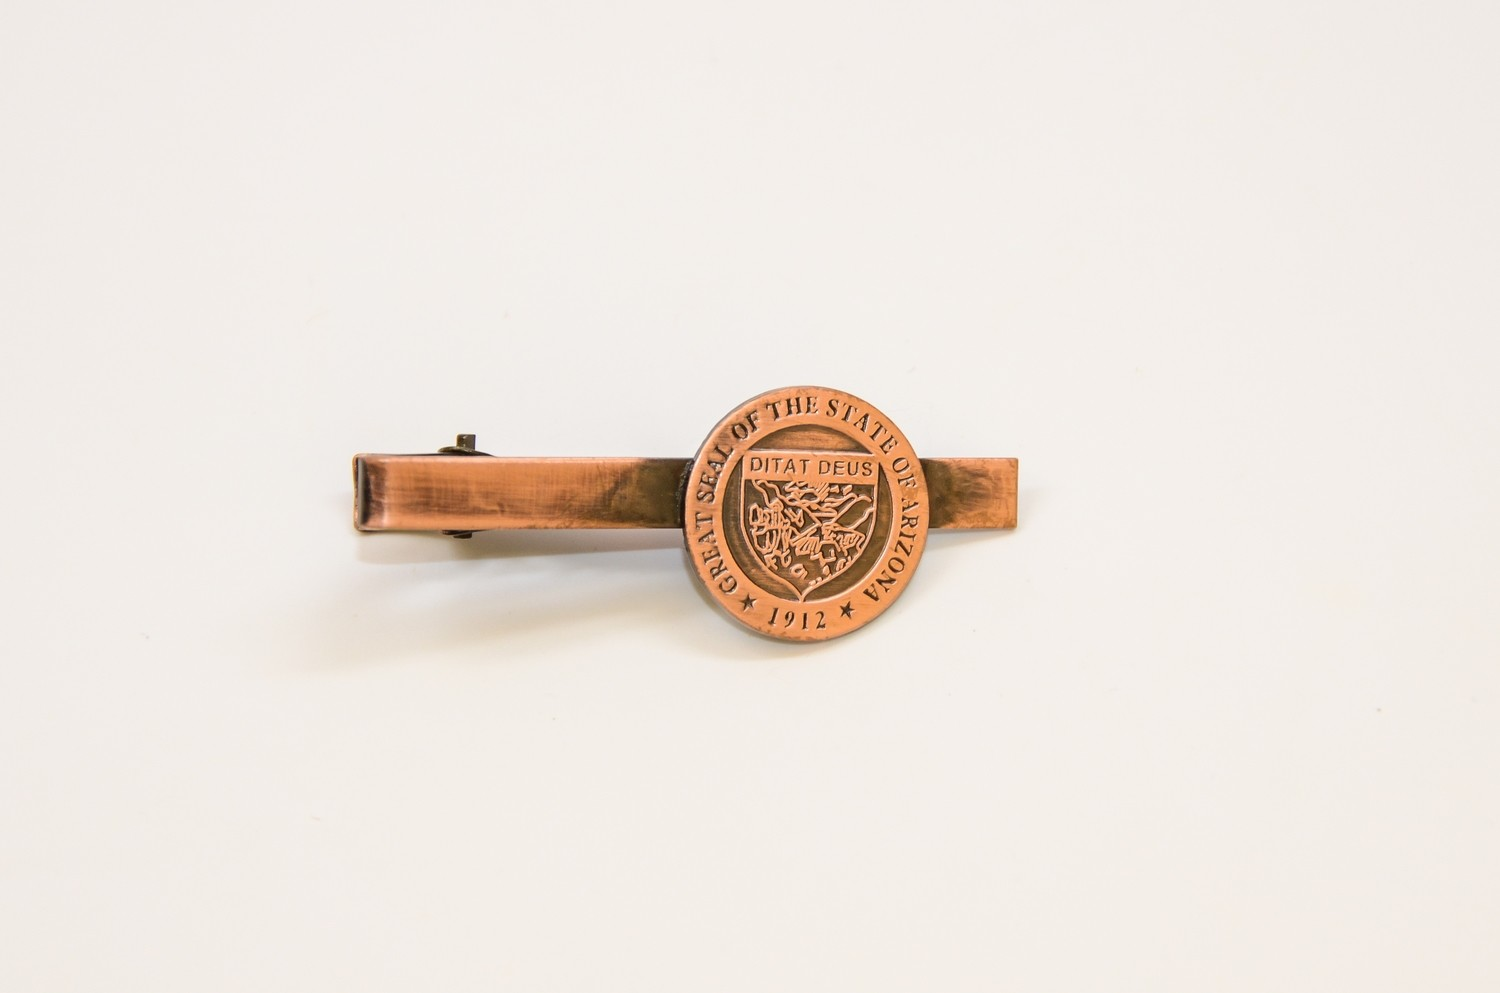 State Seal Copper Tie Bar